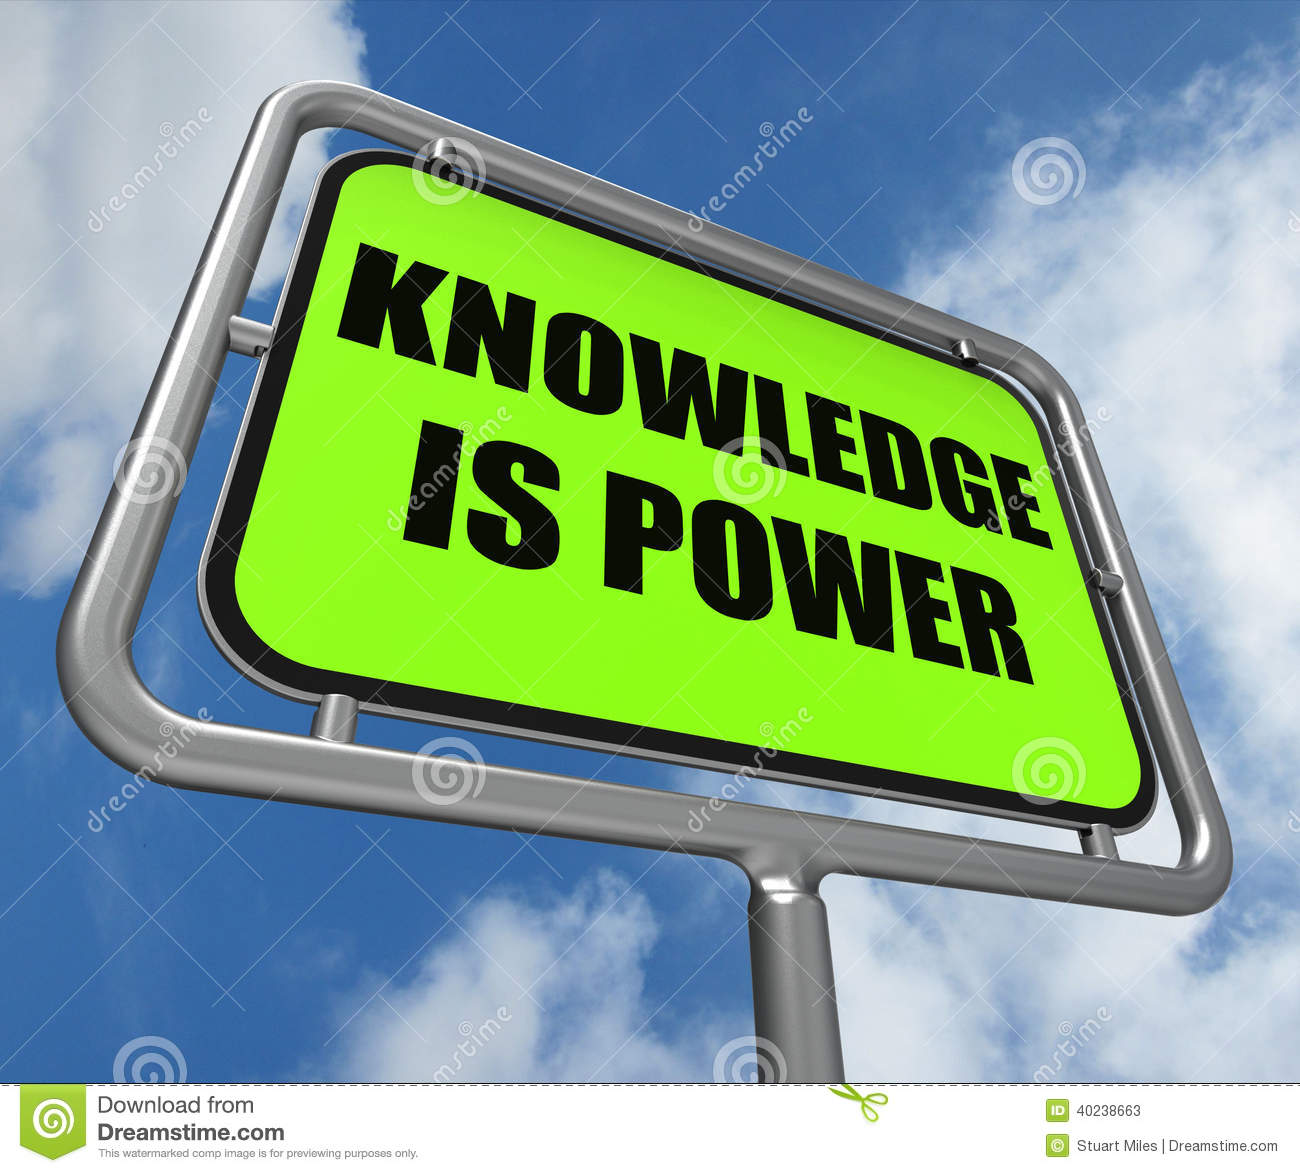 education is power Education: education is life long true power: real power comes from being educated and knowledgeable, not from violence or controlling others the joys of learning: this proverb encapsulates the joy inherent in learning new things.